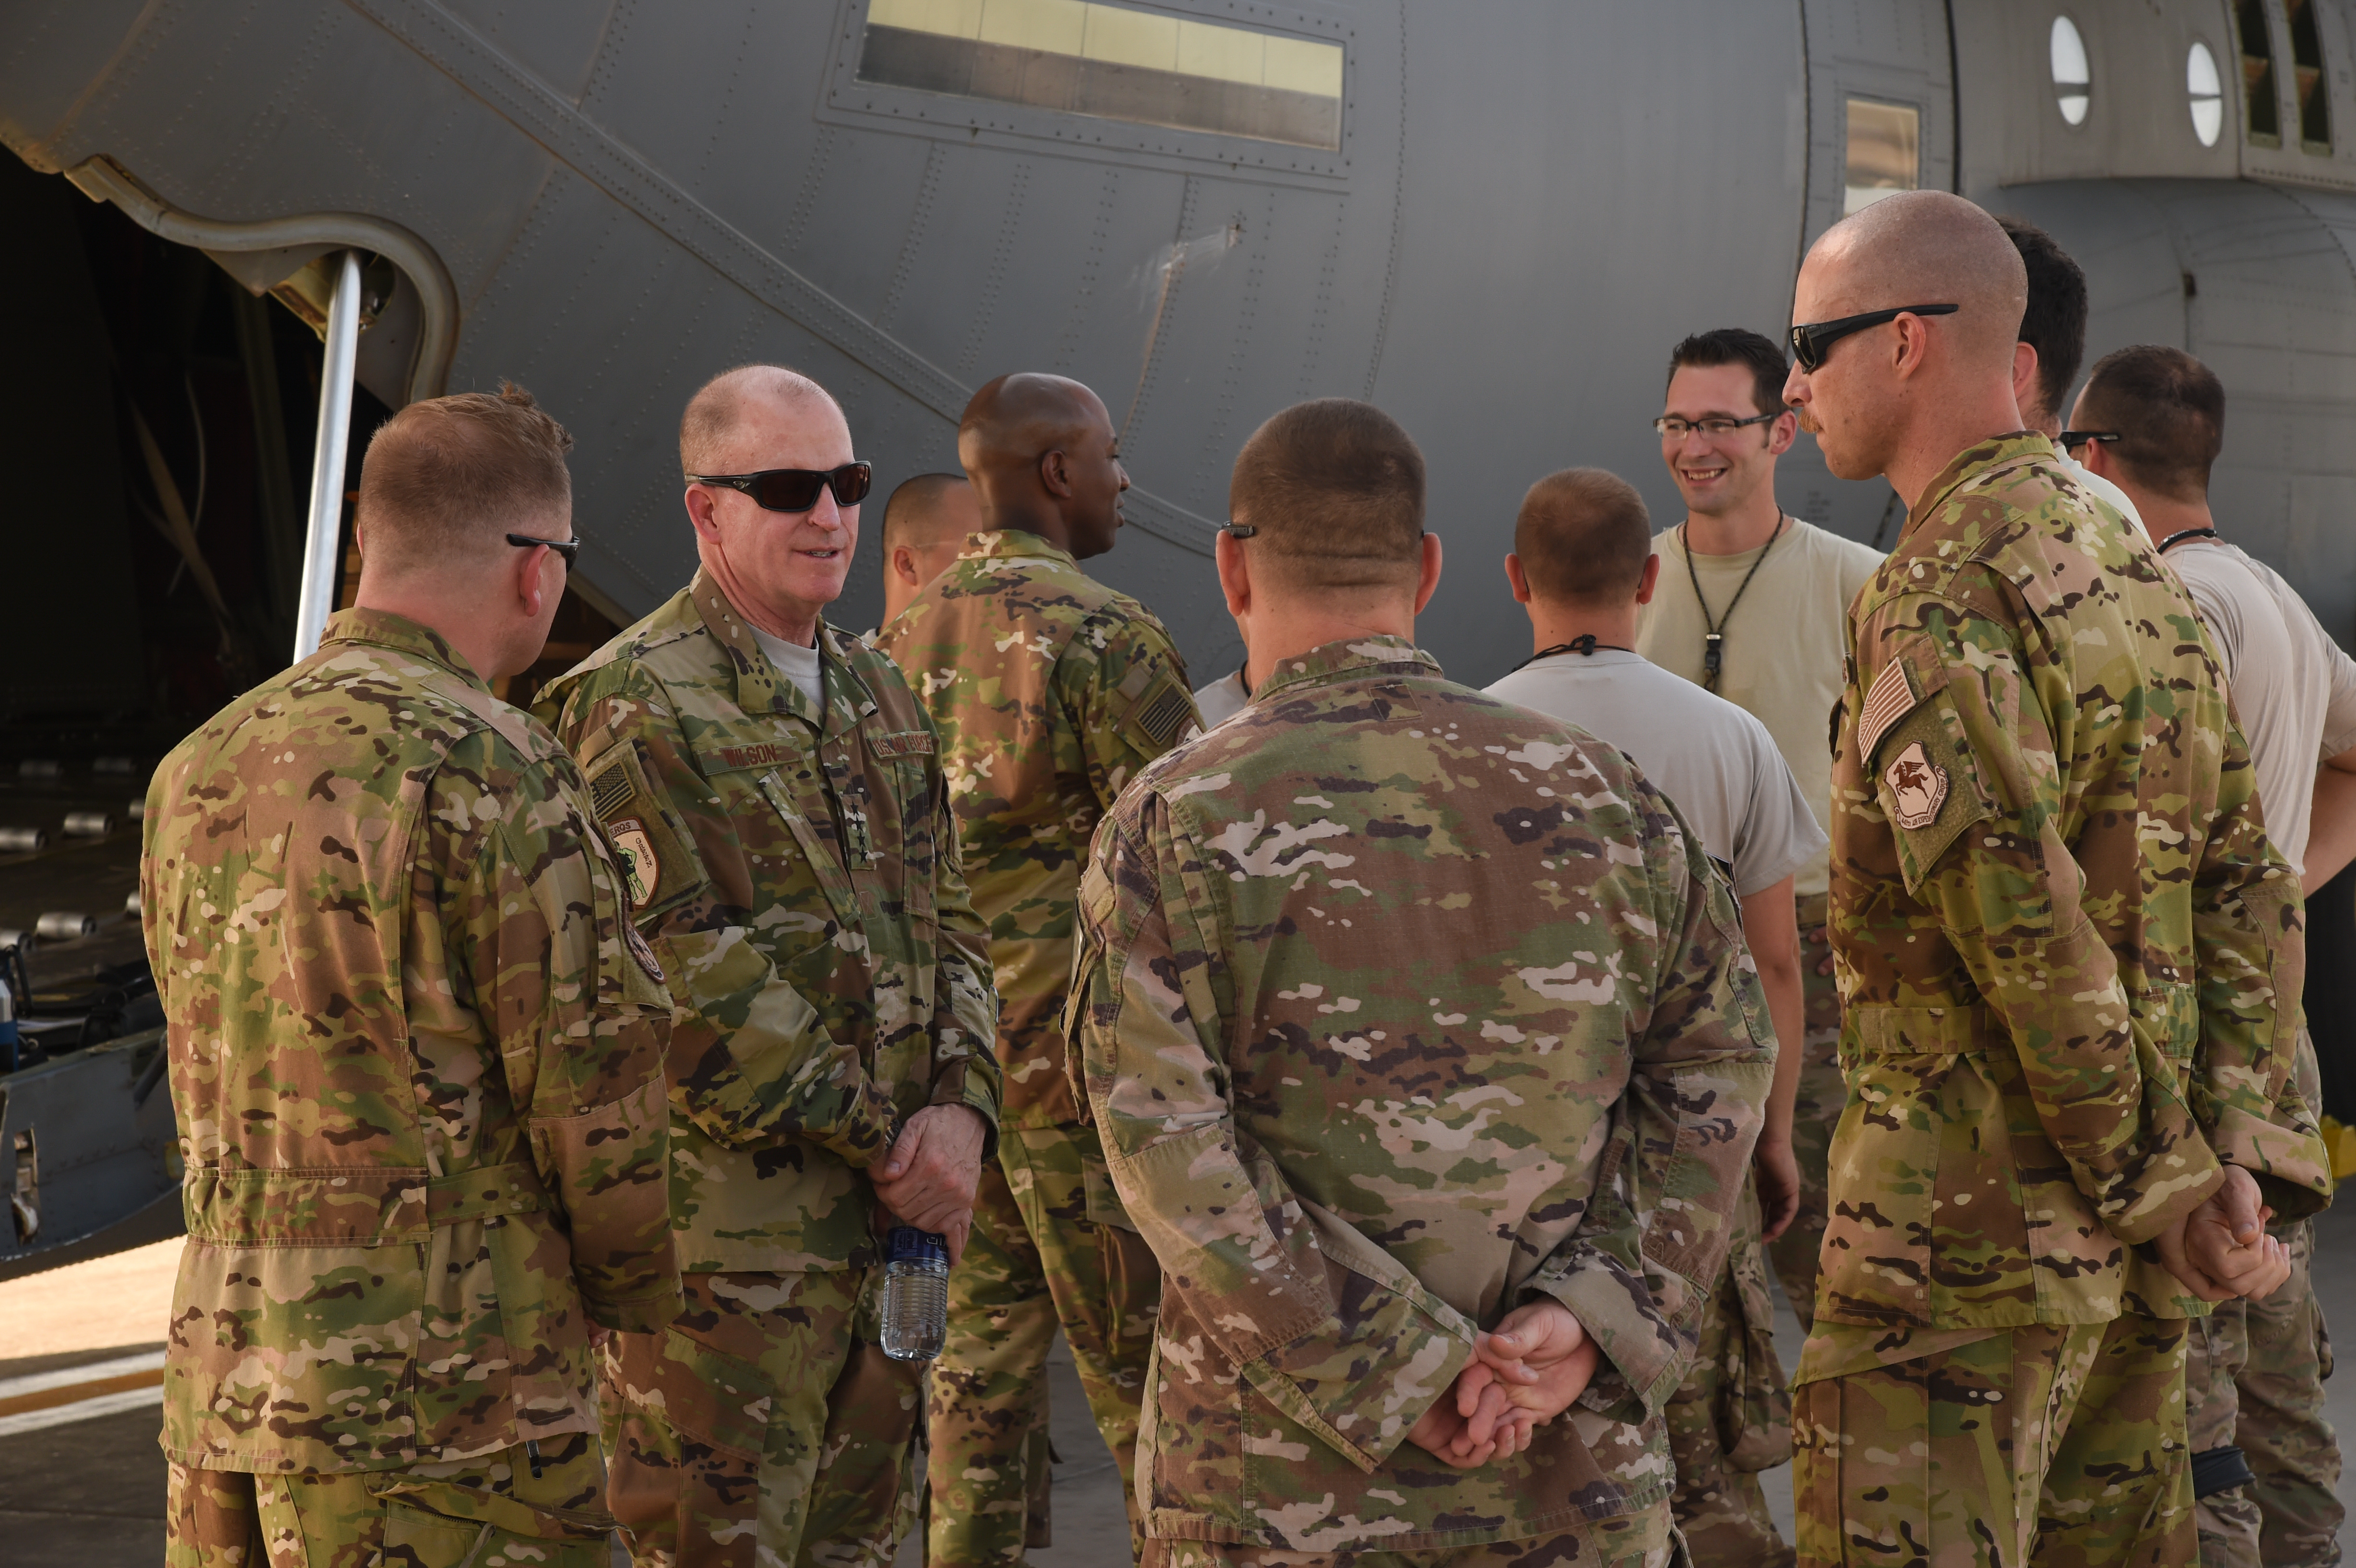 U.S. Air Force Vice Chief of Staff Gen. Stephen Wilson and Chief Master Sgt. of the Air Force Kaleth Wright speak with airmen from the 75th Expeditionary Airlift Squadron during a visit to Camp Lemonnier, Djibouti, April 11, 2017. Wilson and Wright visited CJTF-HOA and other tenant commands with Wright to gain a better understanding of Air Force integration and missions in the U.S. Africa Command area of responsibility. (U.S. Air National Guard photo by Staff Sgt. Penny Snoozy)